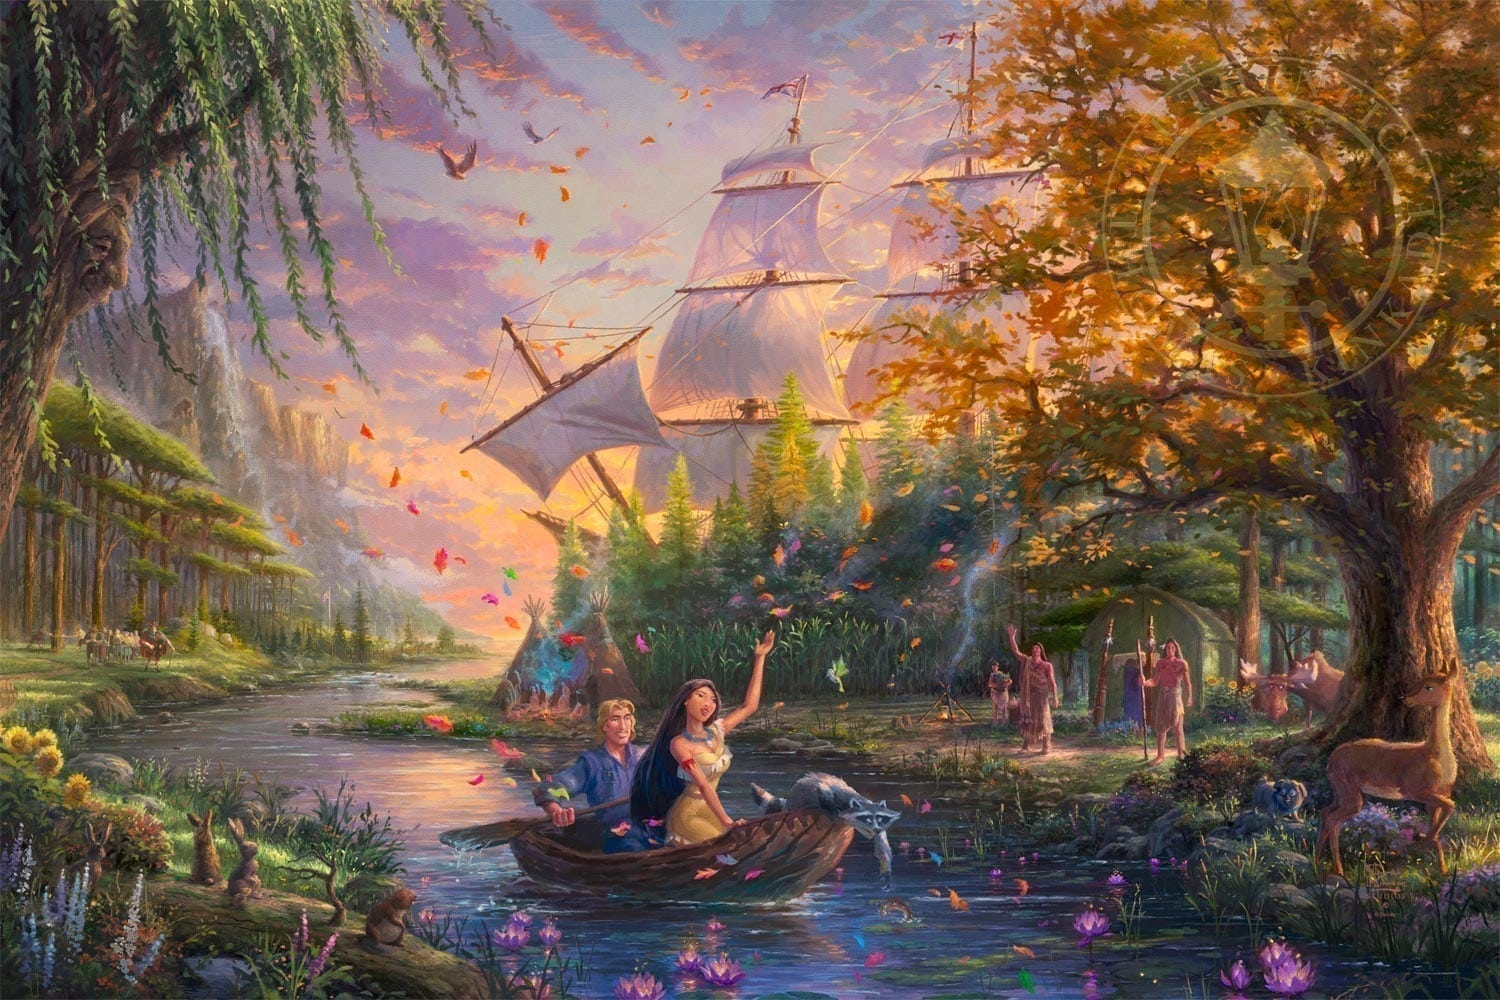 Pocahontas Limited Edition Art The Thomas Kinkade Company